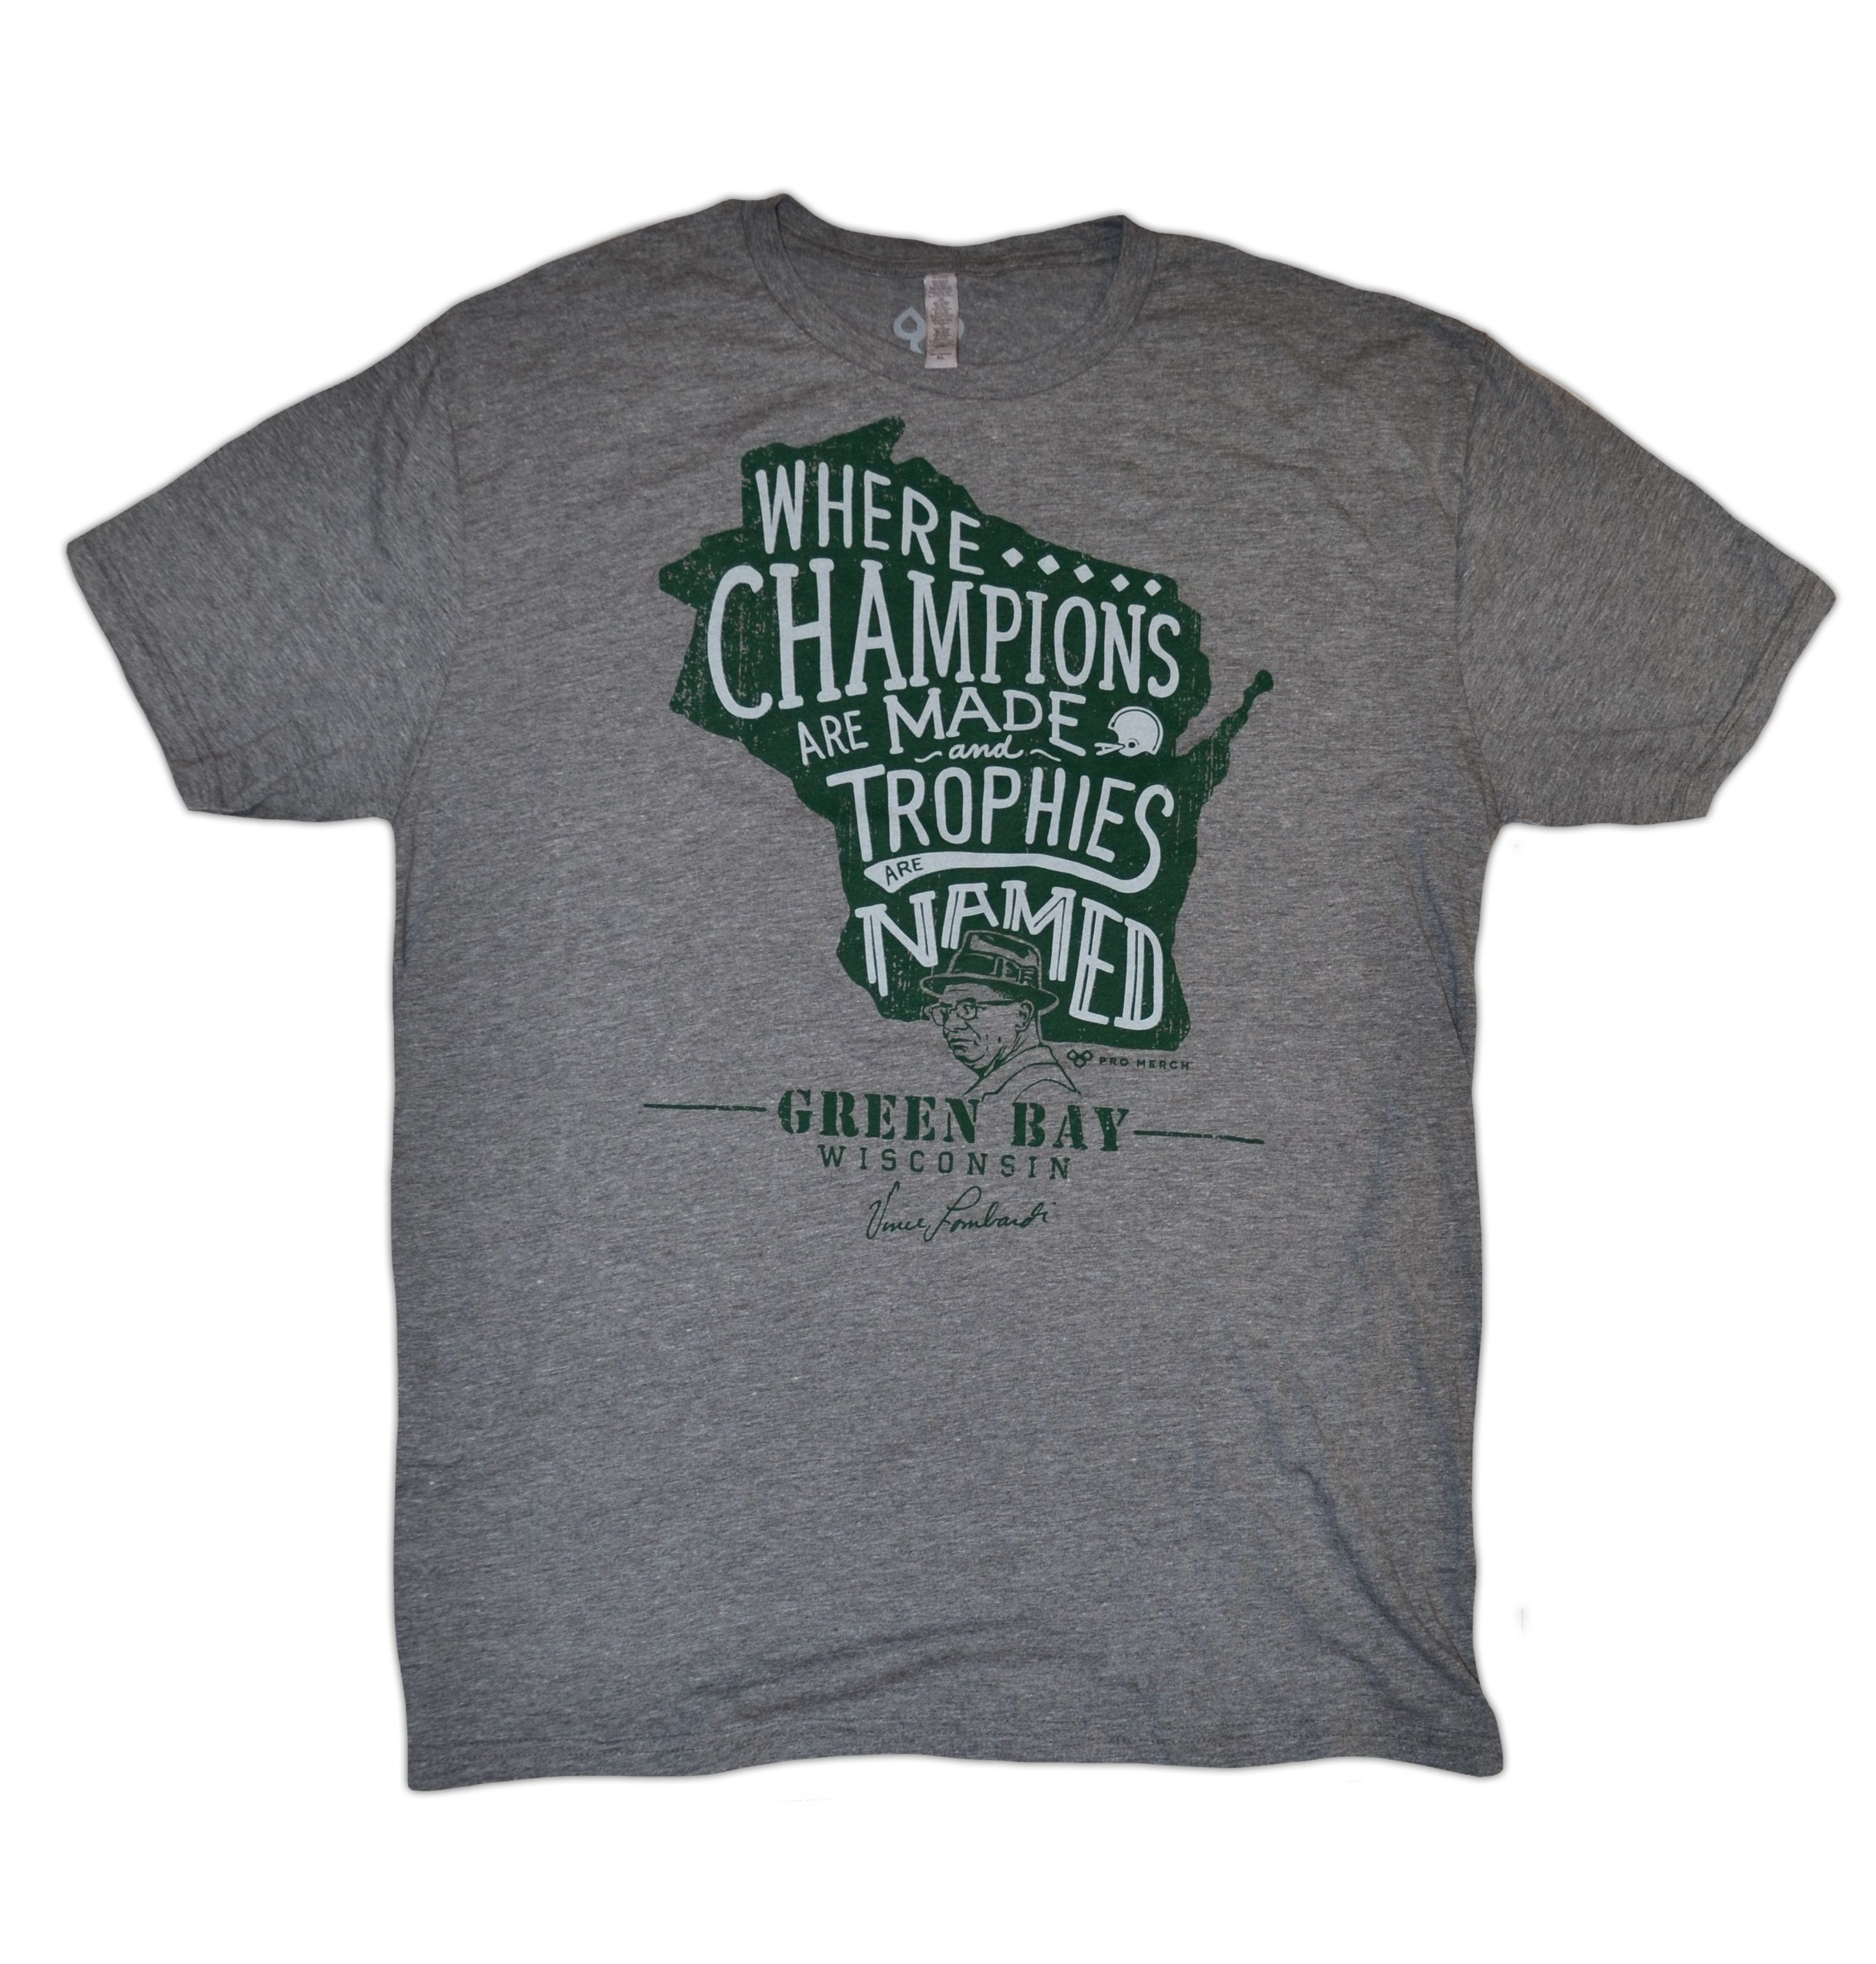 Brand new Vince Lombardi shirt now up online at www.mypromerch.com. Get one for the holidays!!